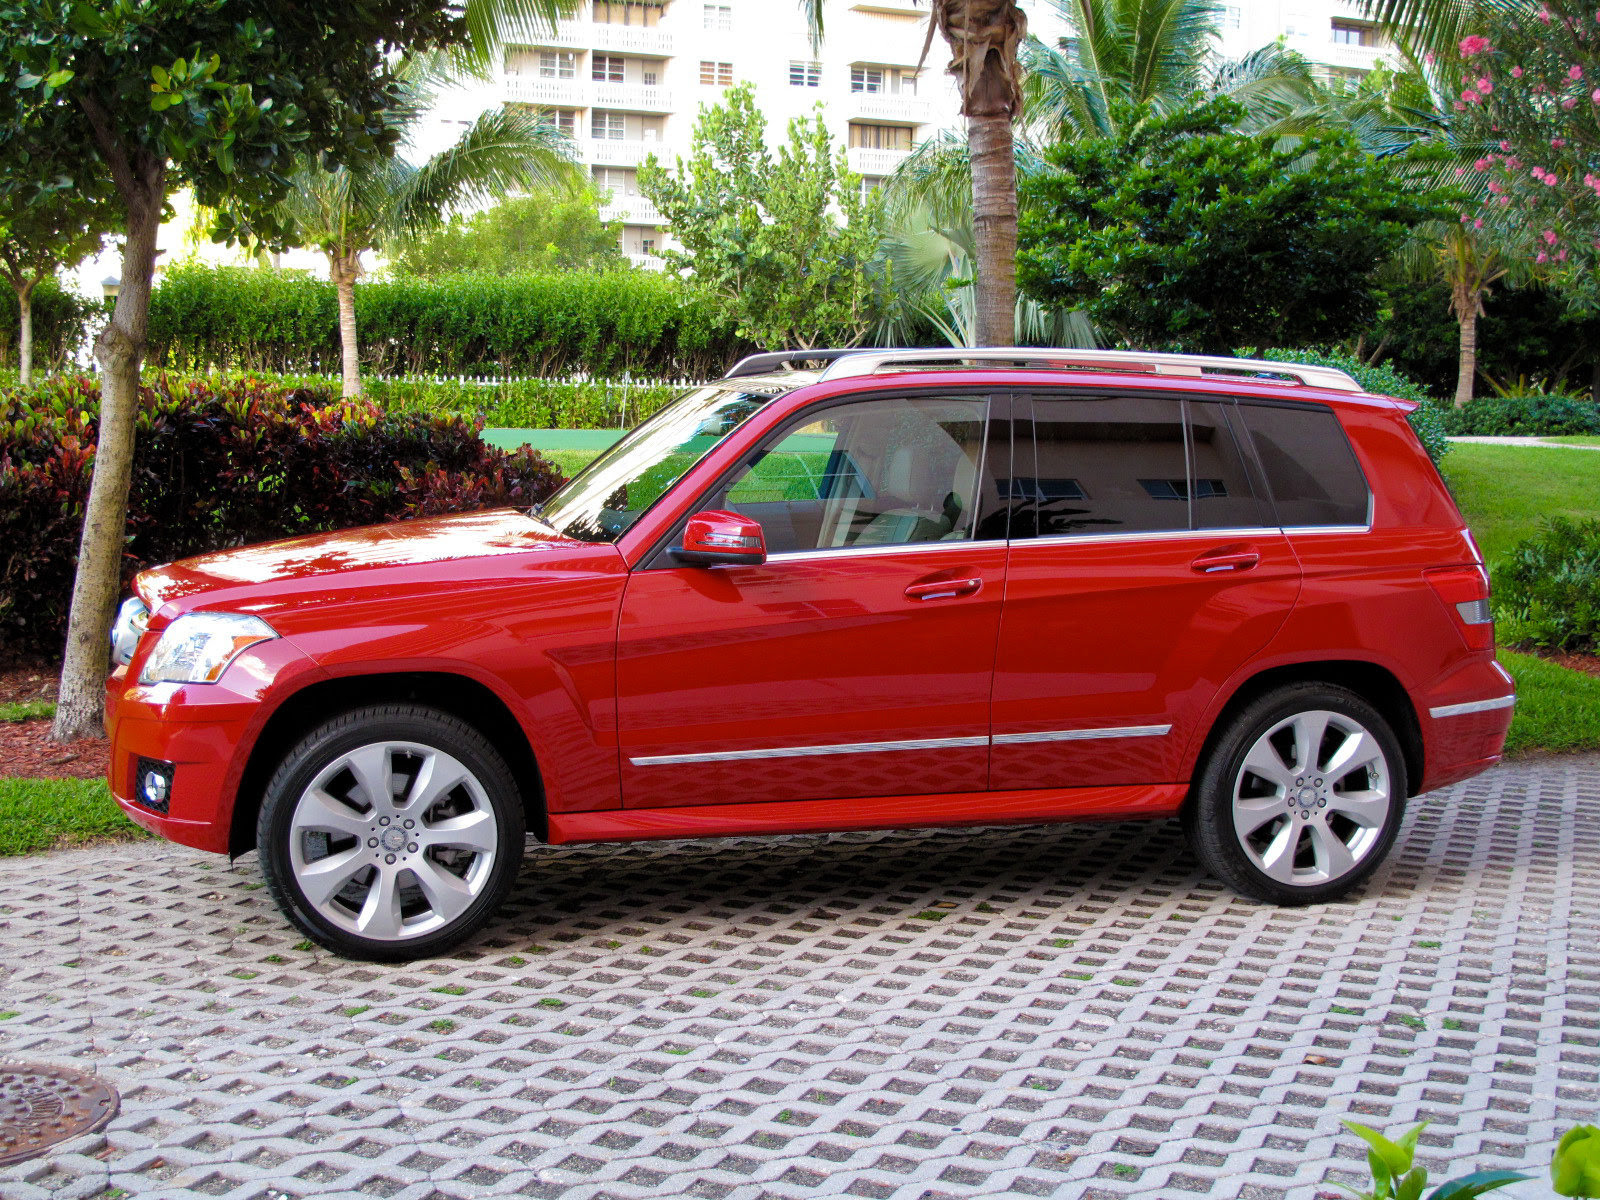 2010 Mercedes Benz GLK 350 - Picture 344503 | car review ...